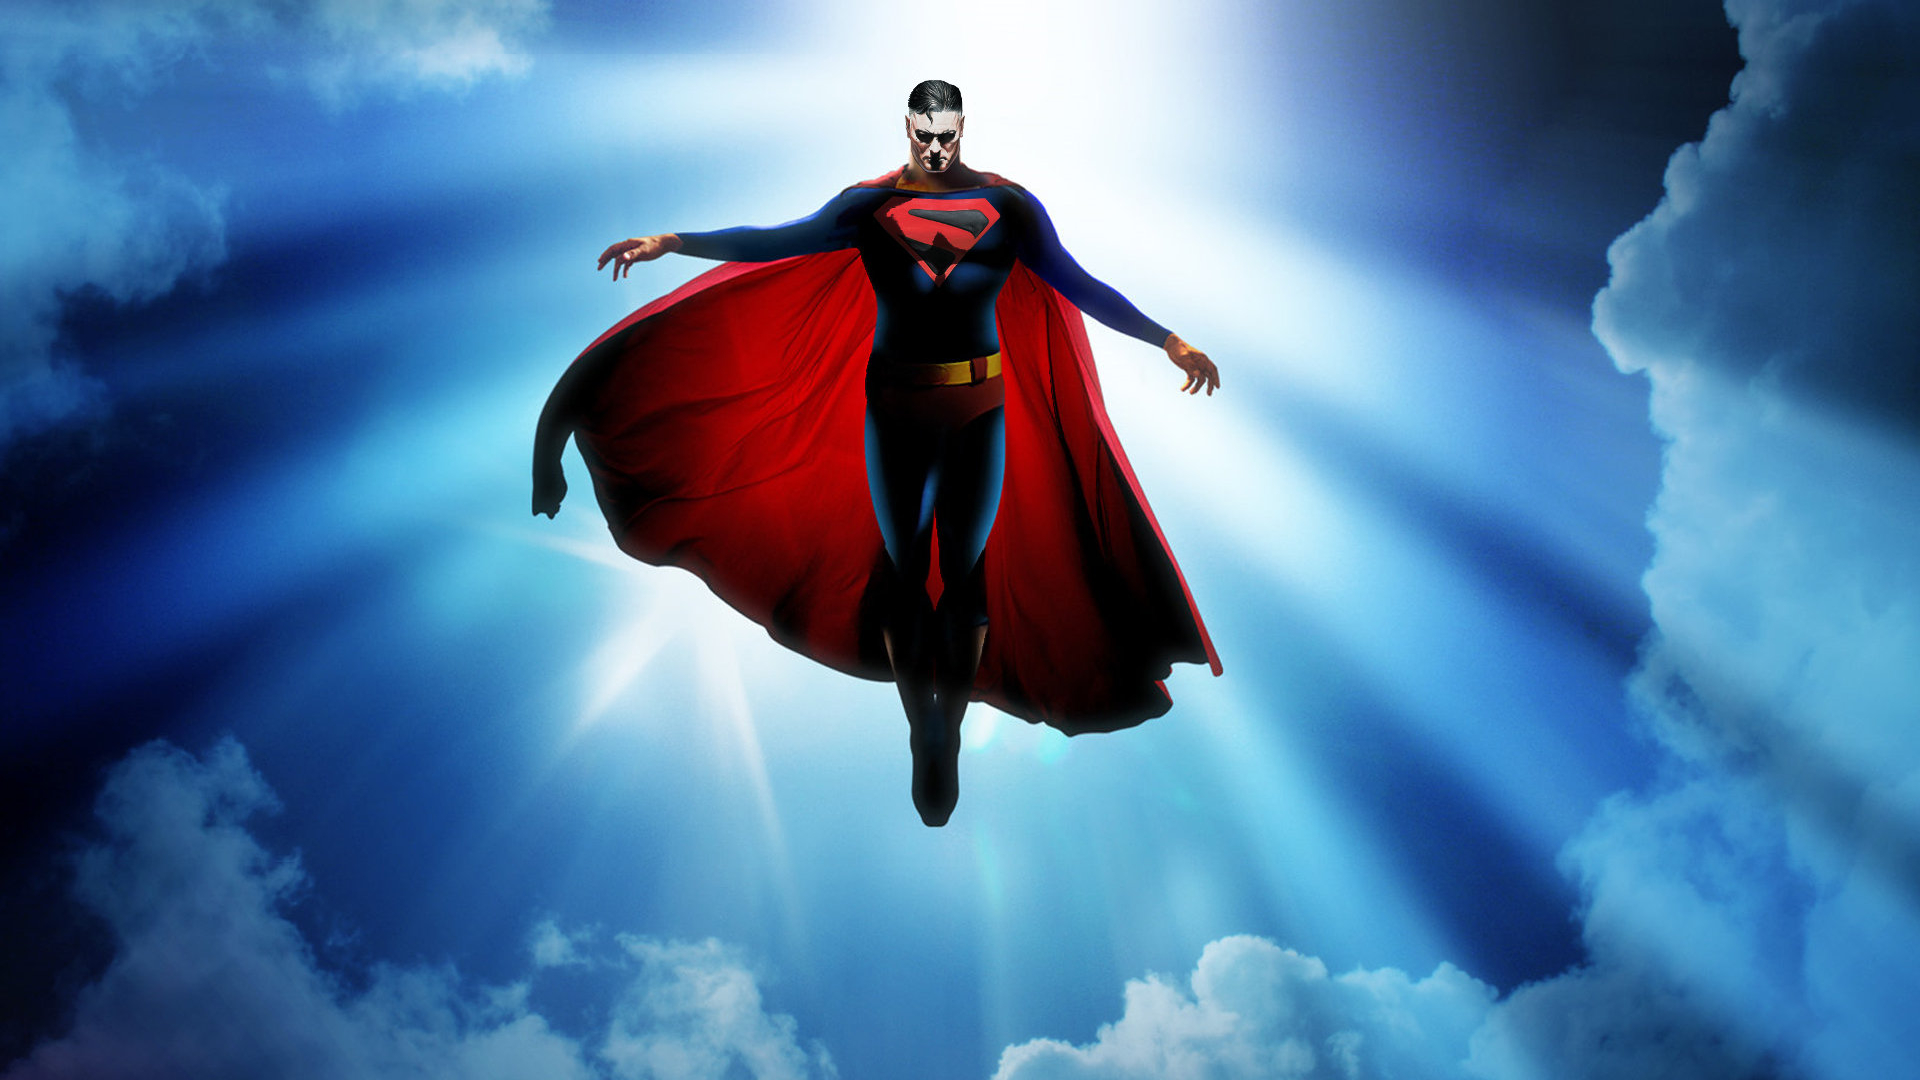 Superman Wallpaper Hd 1920x1080 Images amp Pictures   Becuo 1920x1080